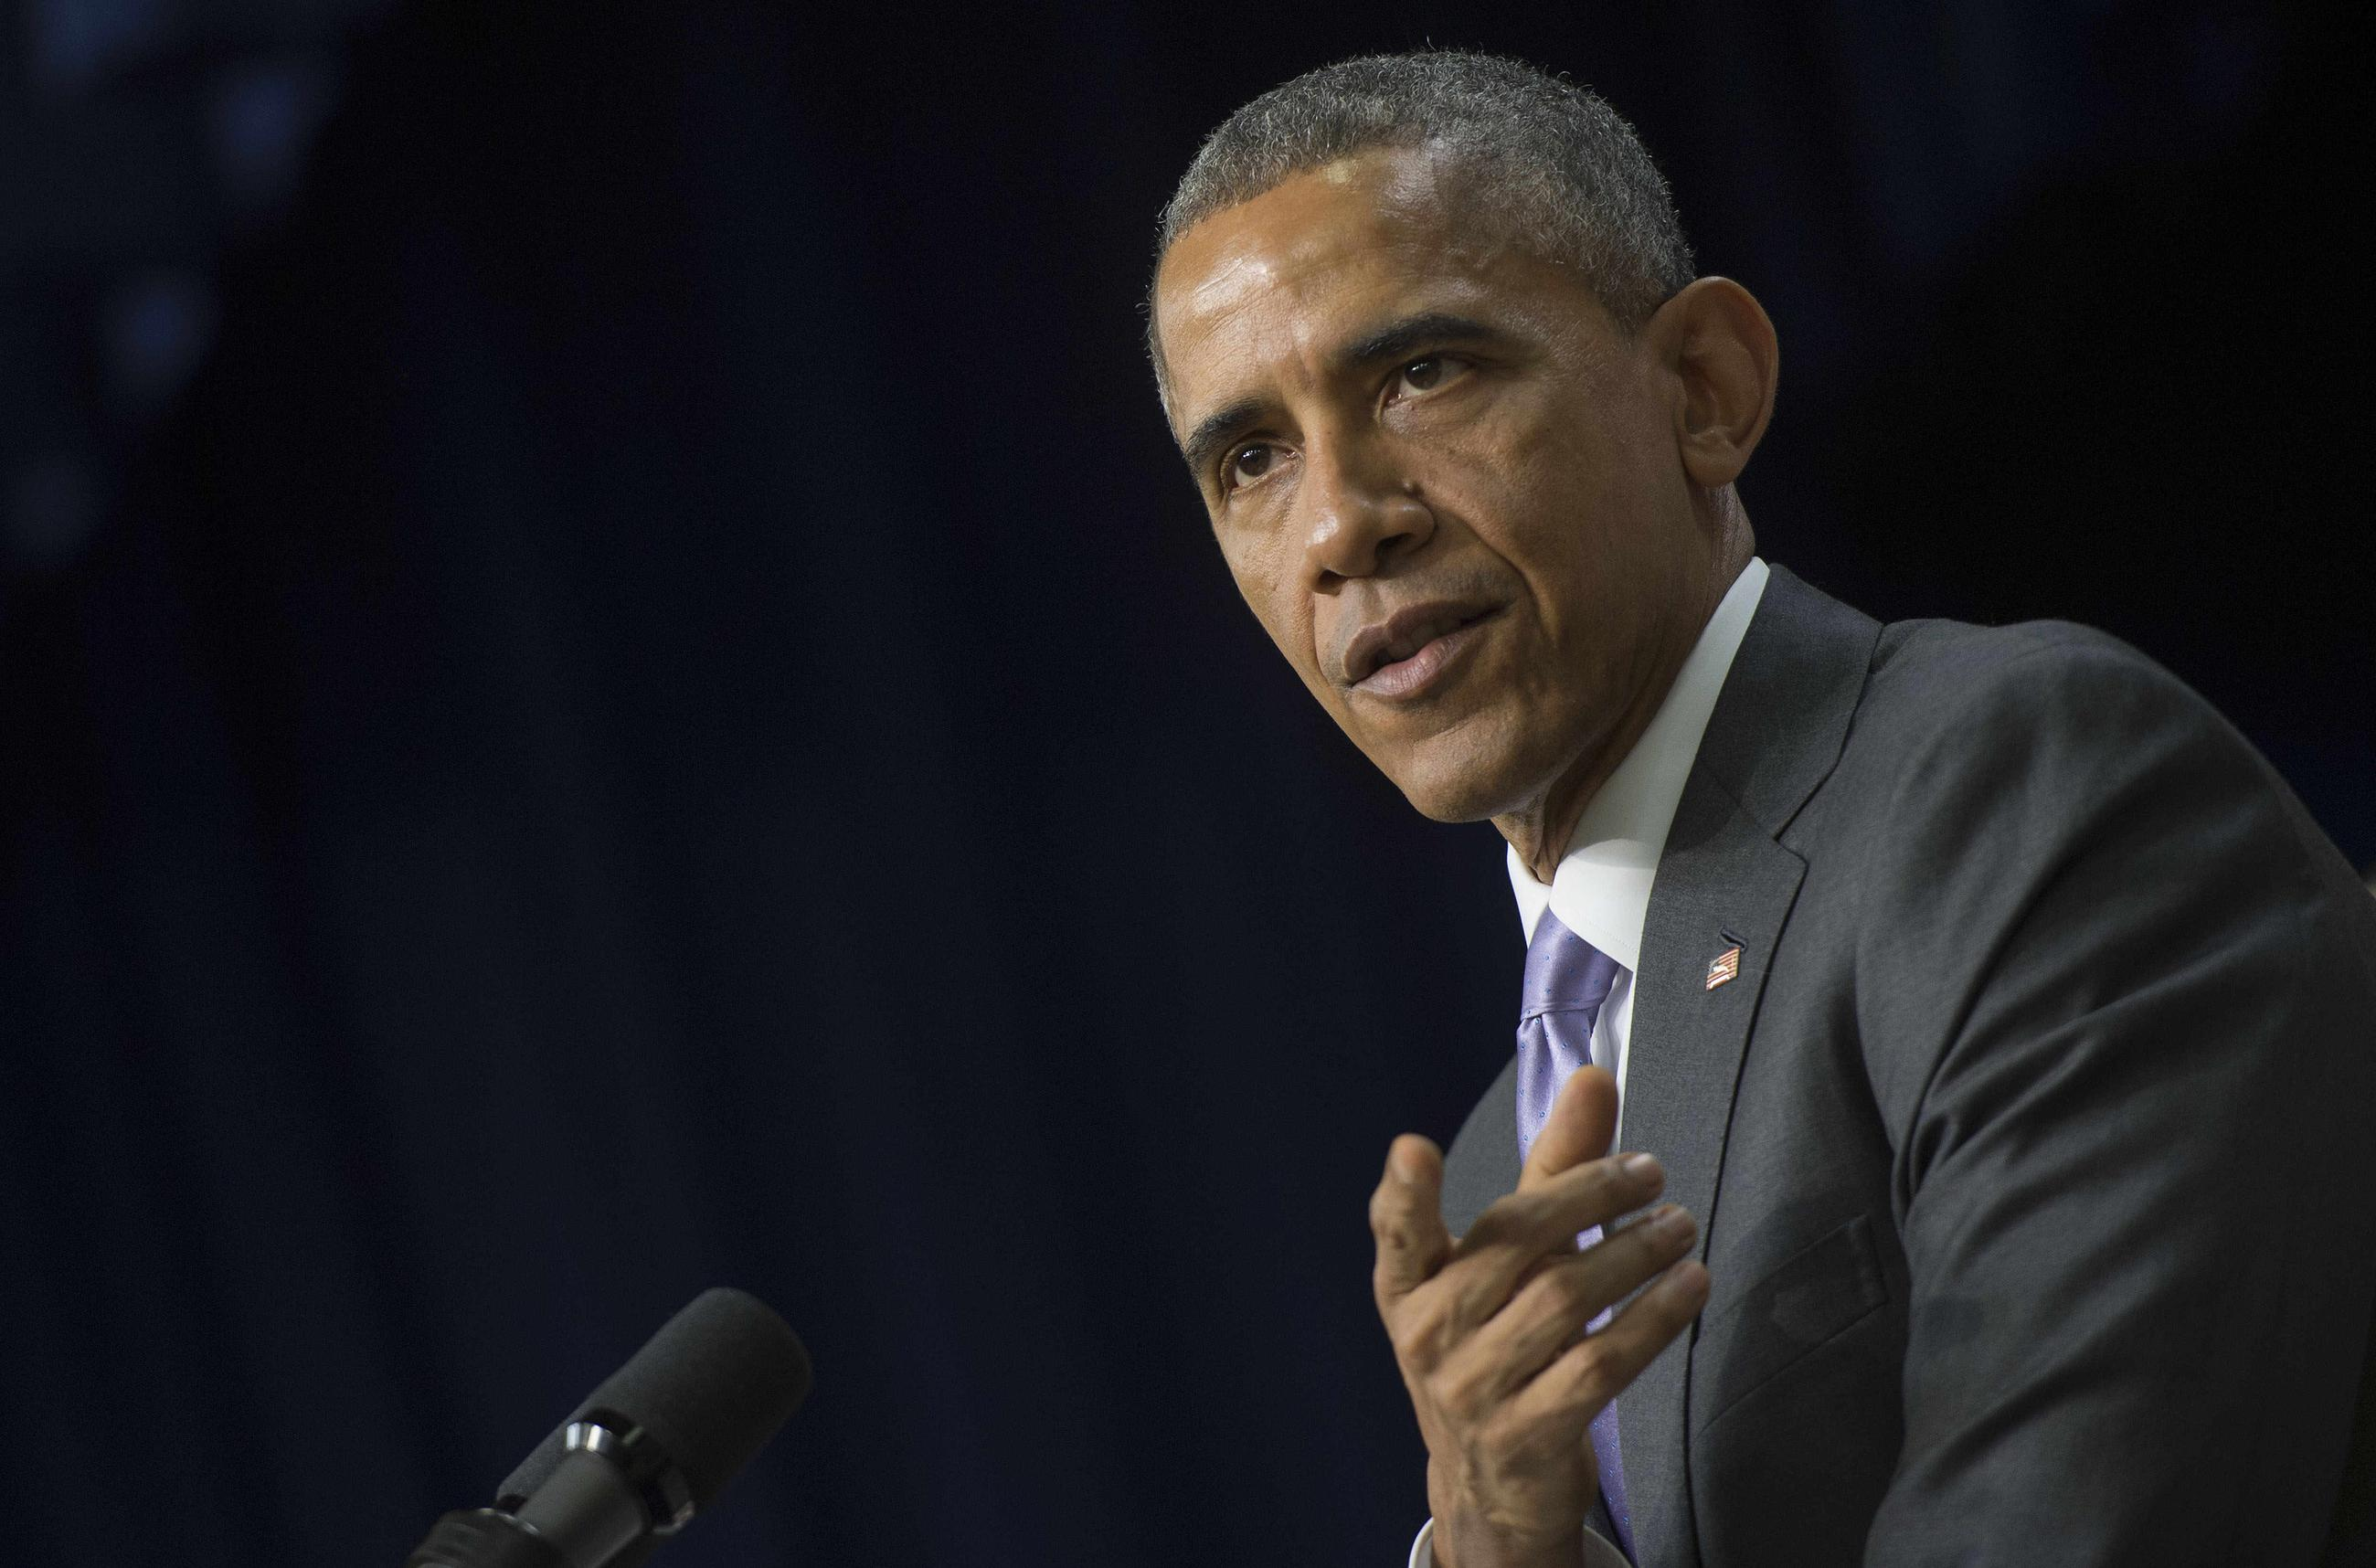 Obama: 'No Religion Is Responsible for Terrorism'